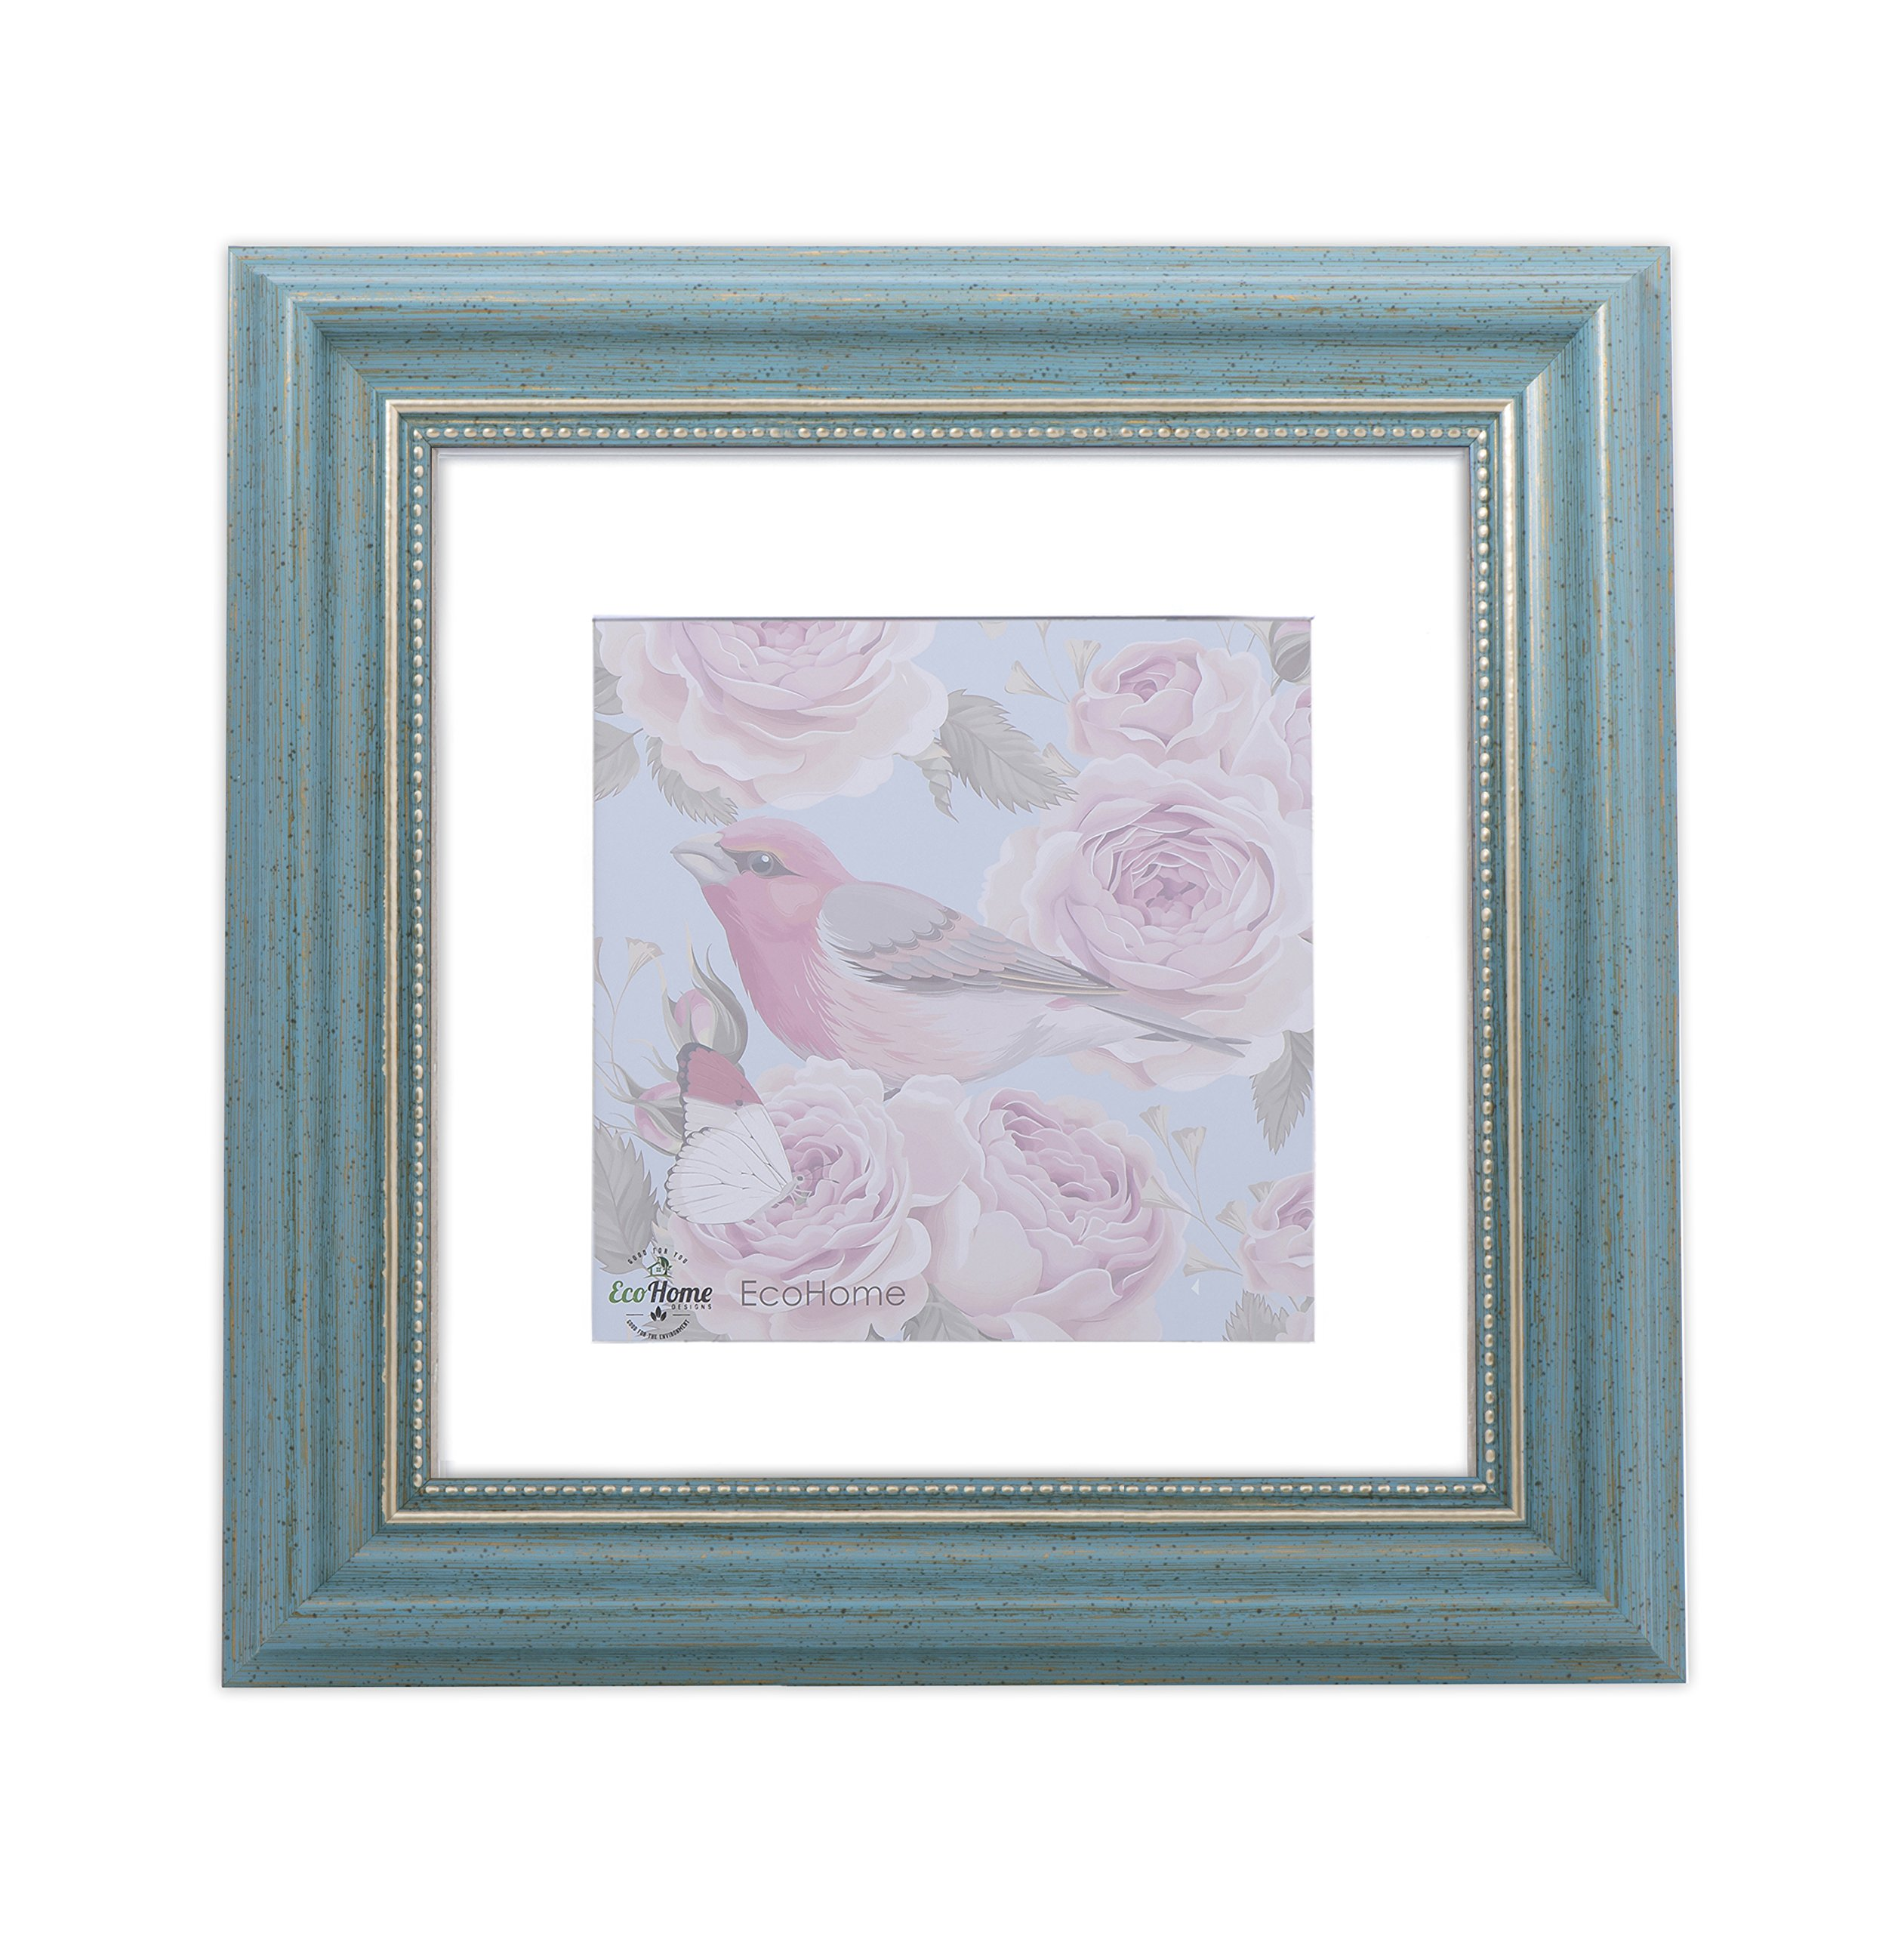 EcoHome 11x11 Picture Frame Teal - Gold Matted for 8x8 Pictures & 11x11 Pictures Without mat - Hanging Kit Included